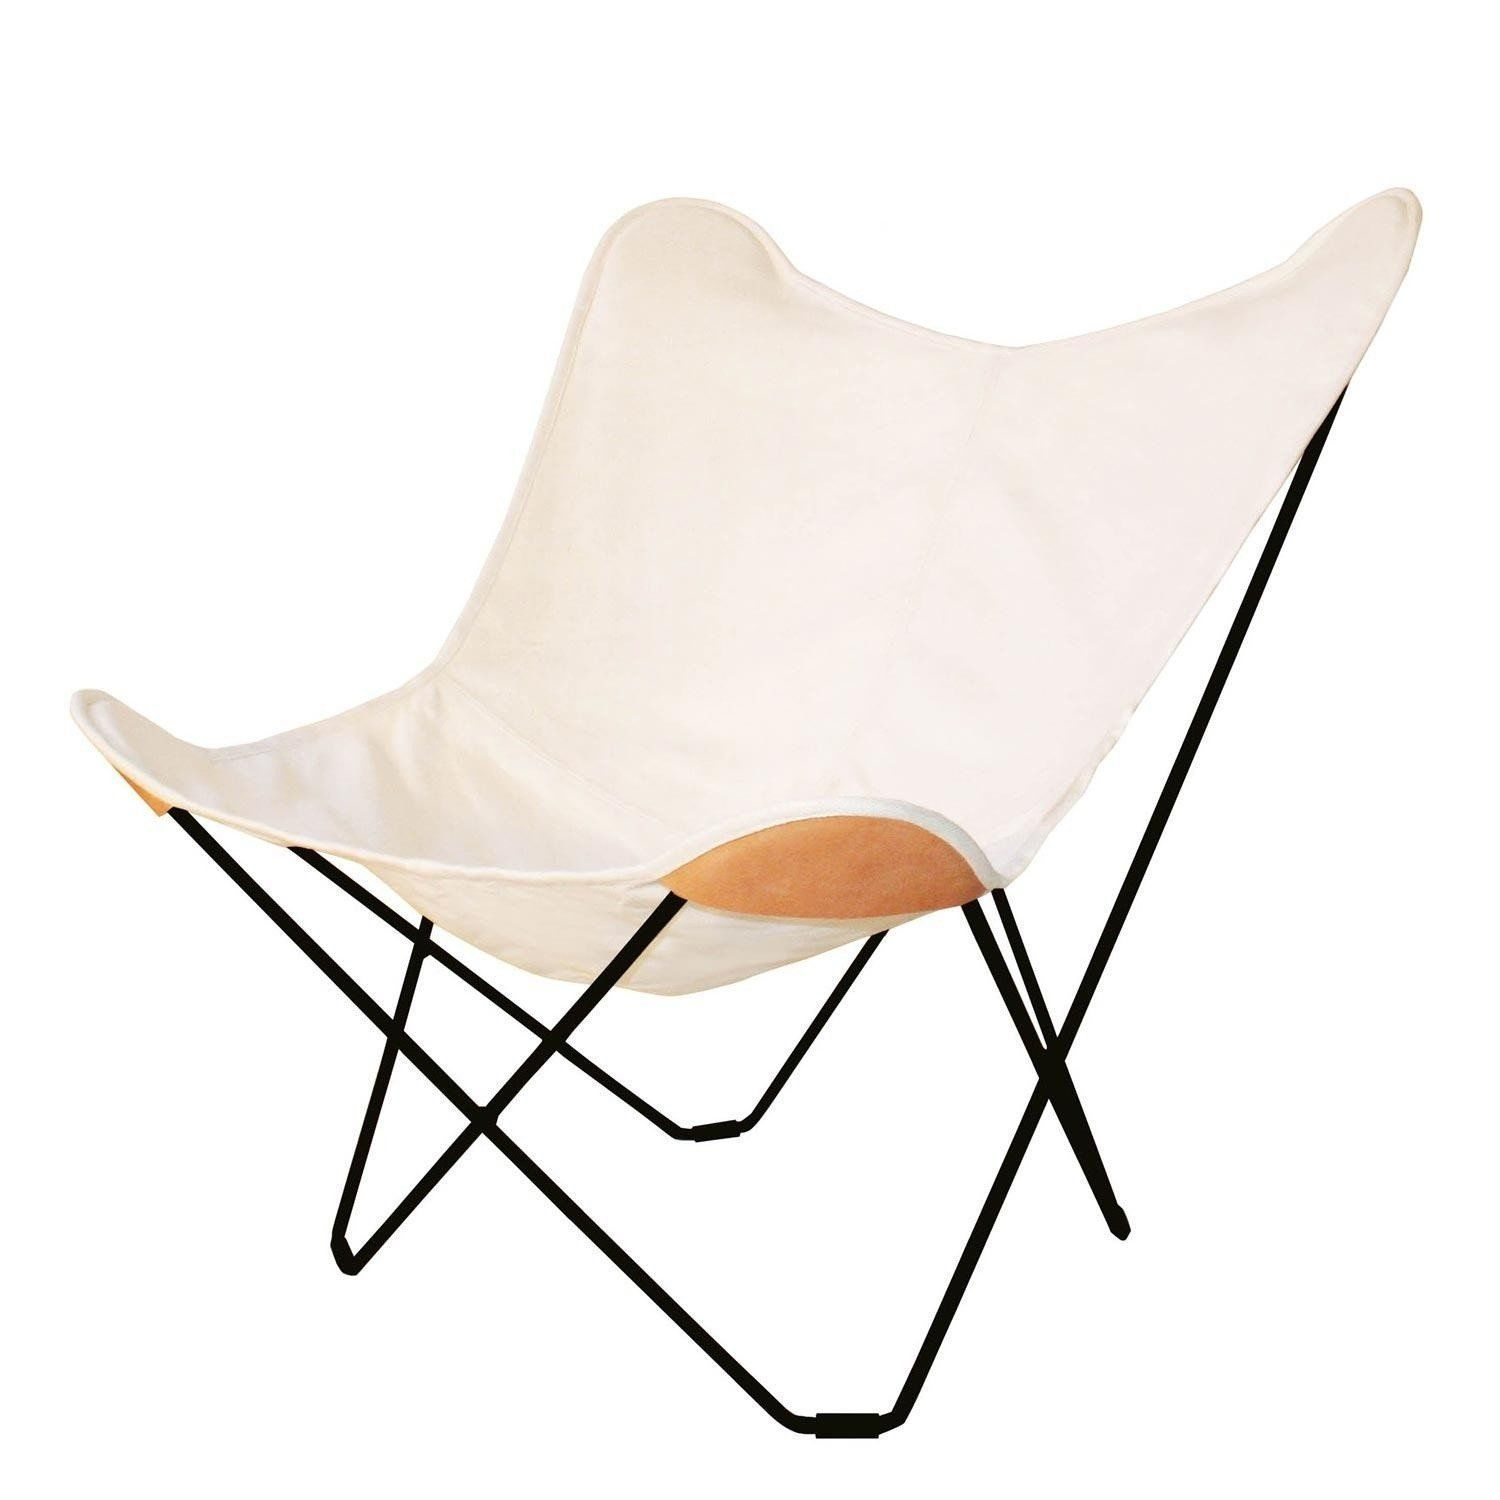 Cuero   Canvas Mariposa Butterfly Chair Outdoor ...